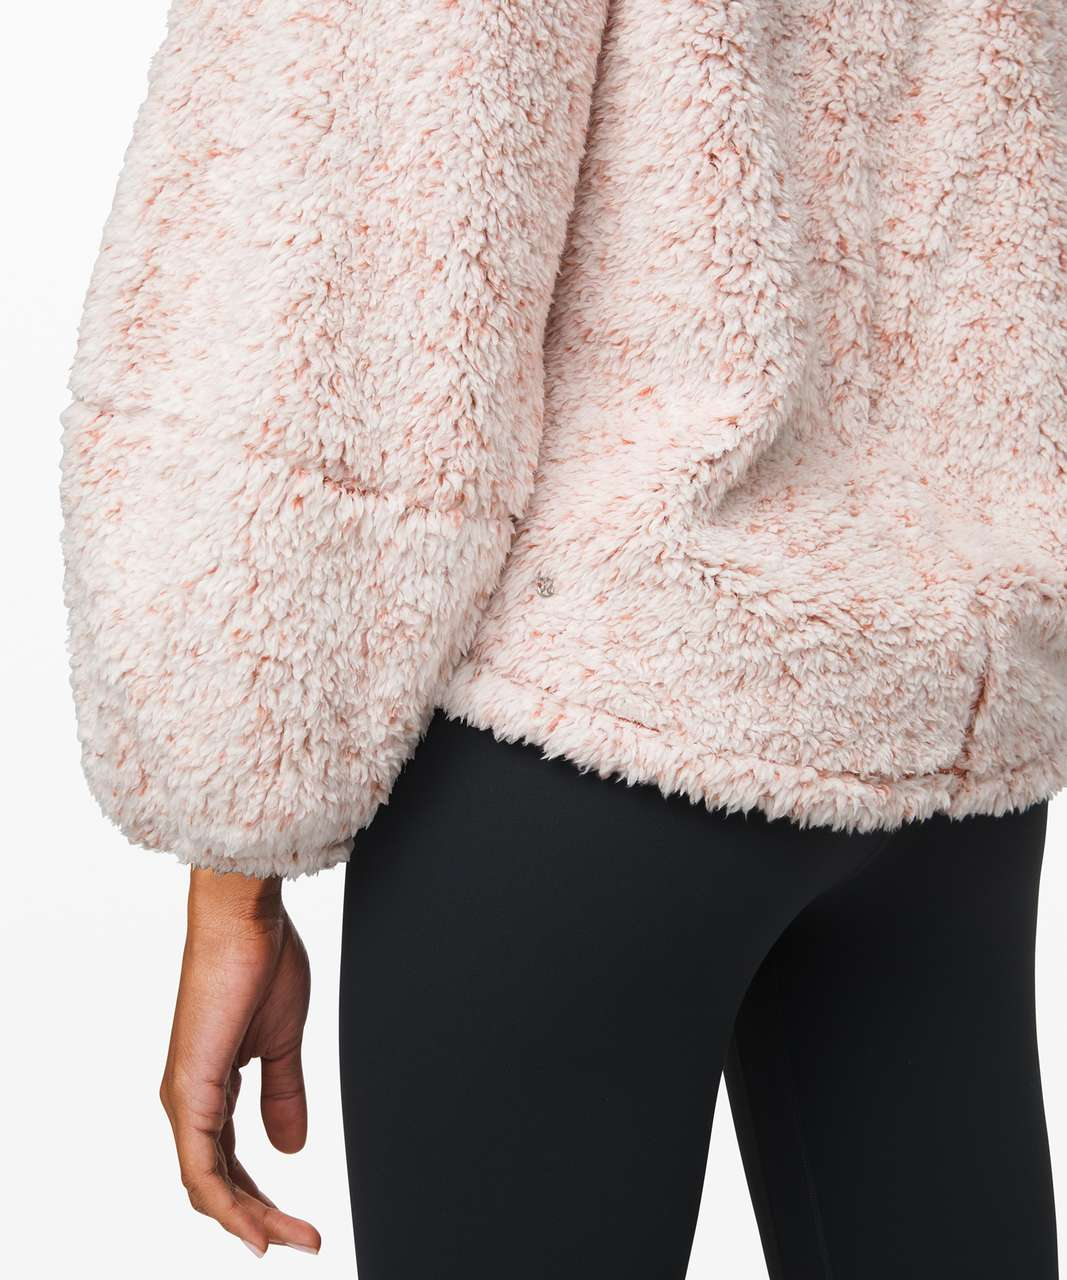 Lululemon Warmth Restore Sherpa Pullover - Heathered Copper Clay